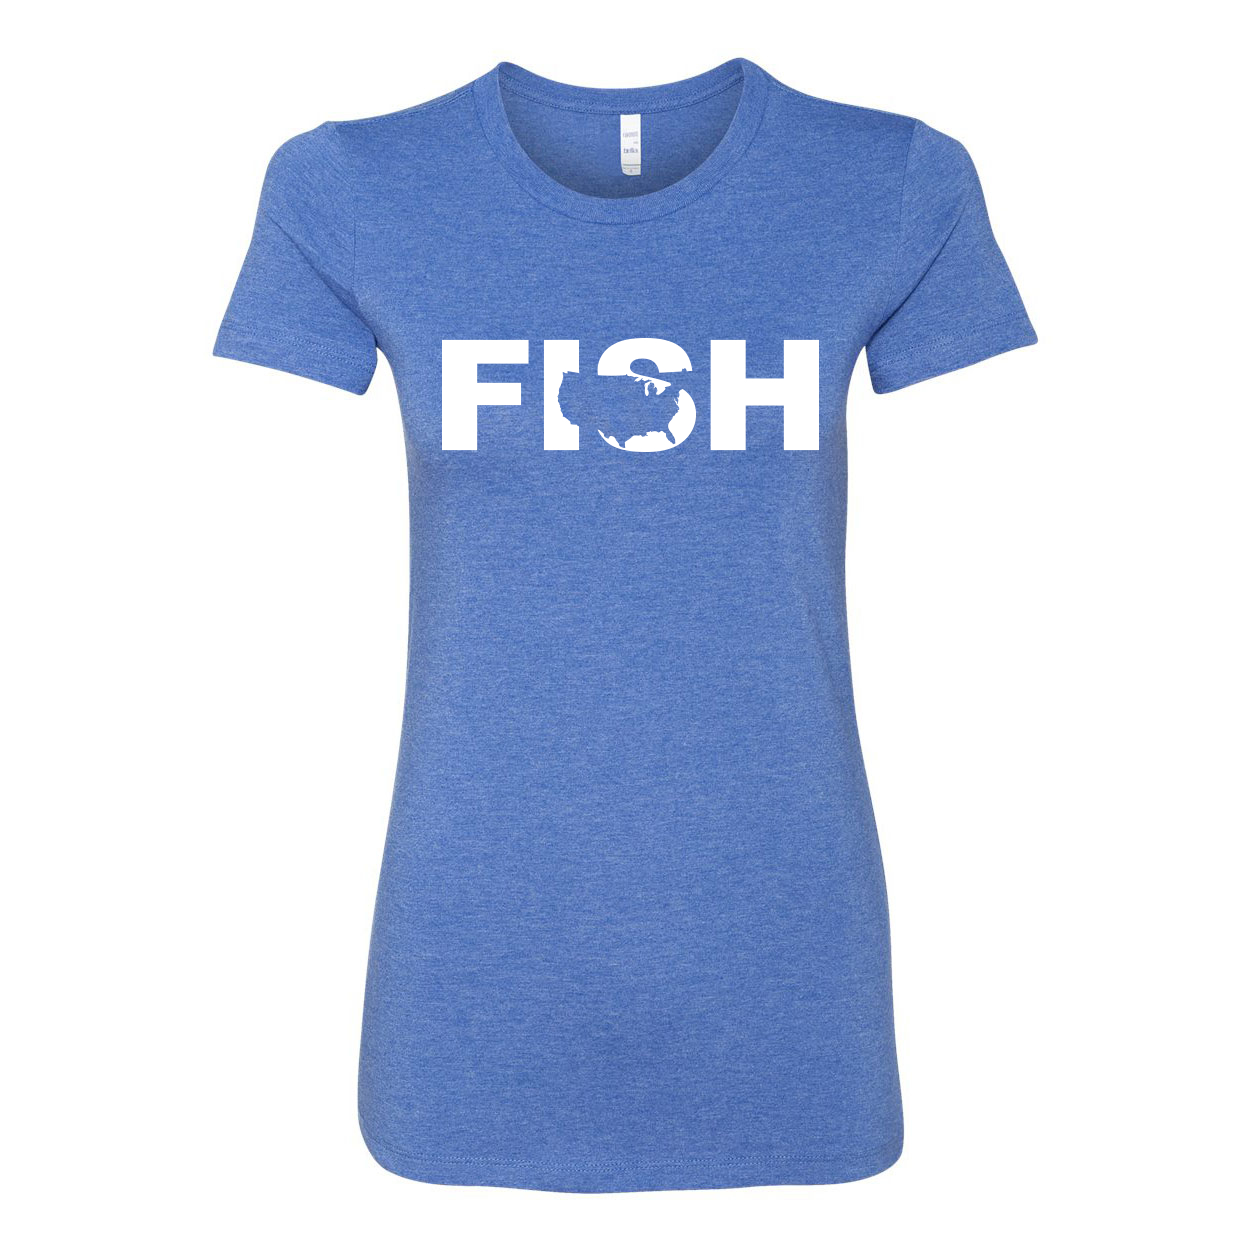 Fish United States Classic Women's Fitted Tri-Blend T-Shirt True Royal Heather Blue (White Logo)